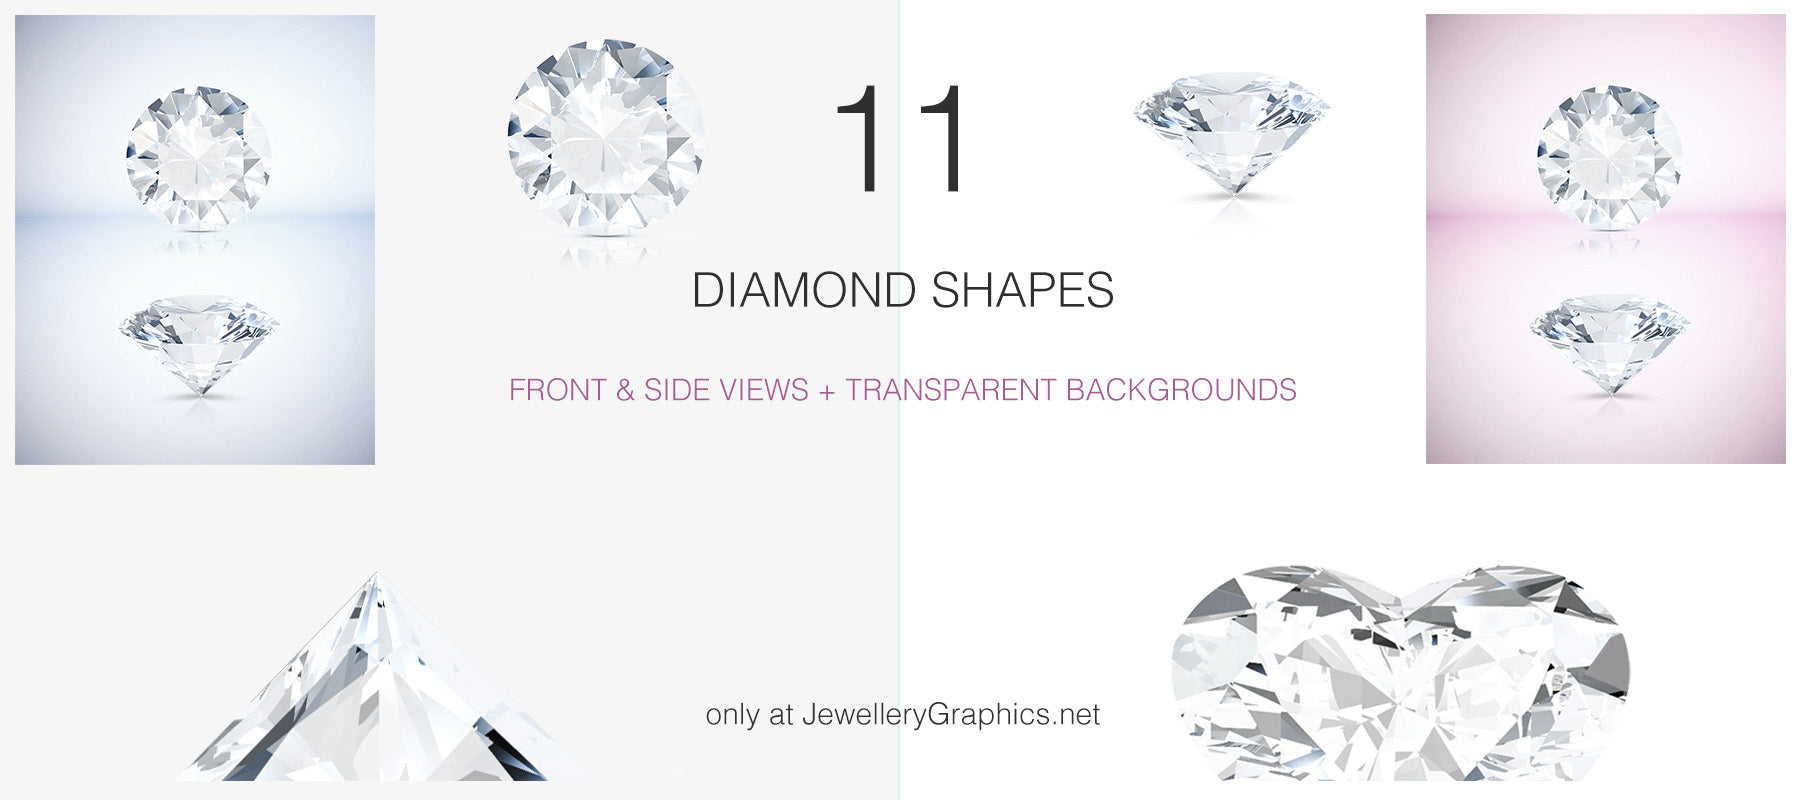 diamond shape images for websites